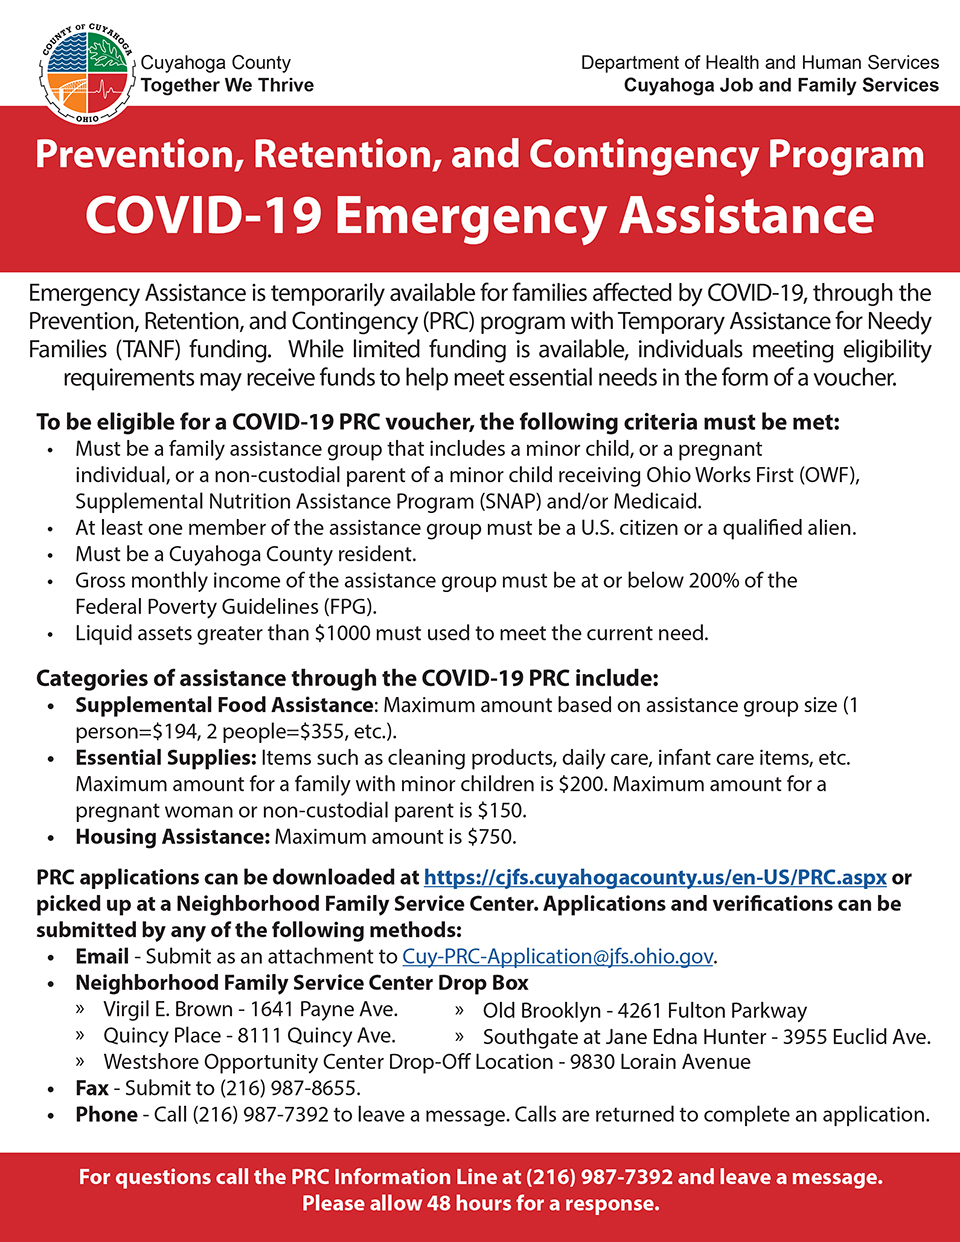 Cuyahoga County Prevention, Retention, and Contingency (PRC) Program COVID-19 Emergency Assistance flier.